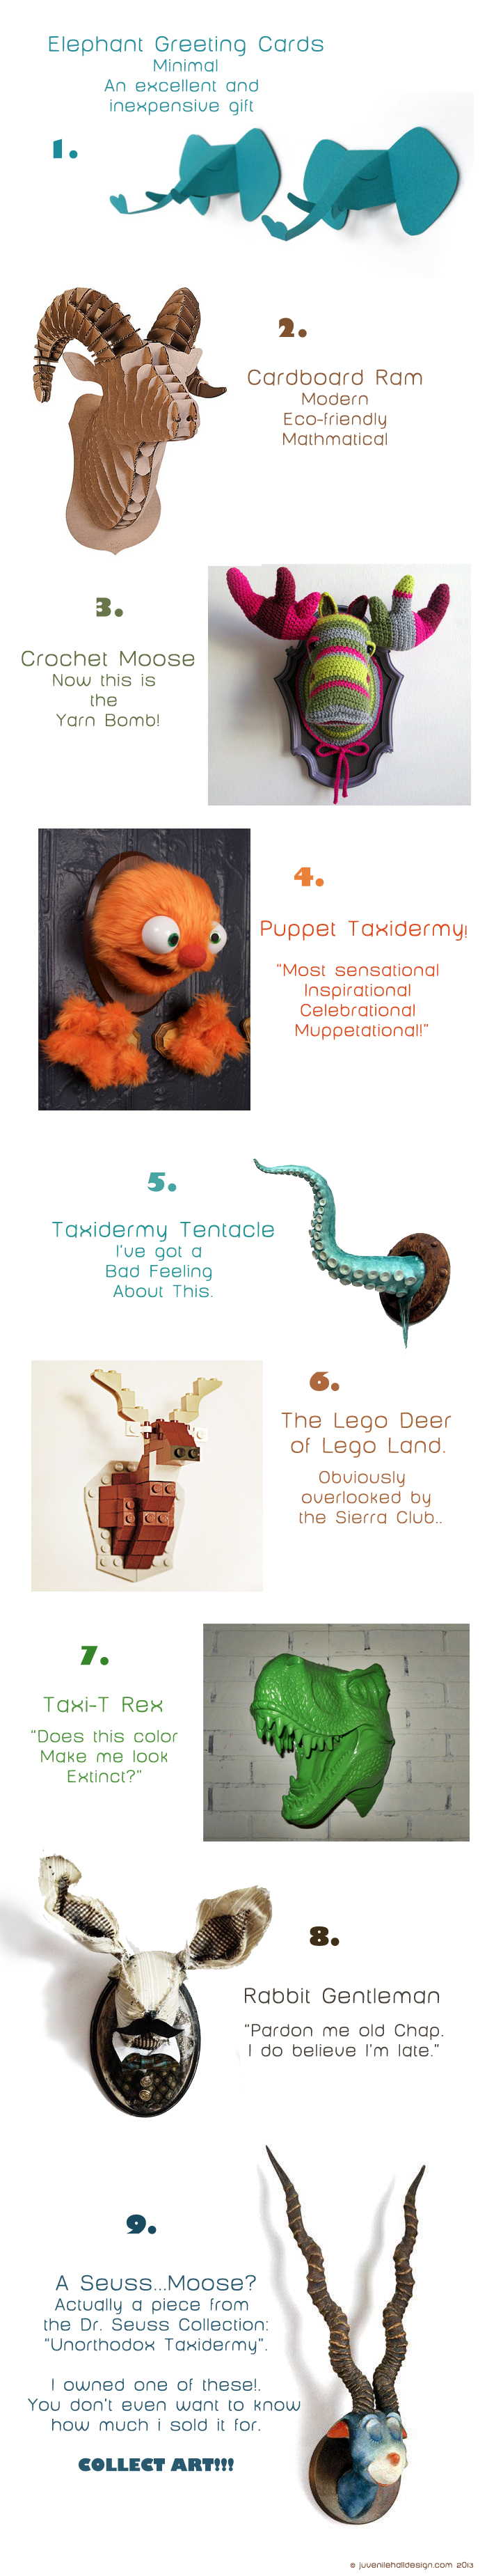 1. Elephant Greeting Cards    2. Cardboard Ram   3. Crochet Moose (I would love to know who made this!)   4.  Puppet Taxidermy (a.k.a. Murphy)   5.  Taxidermy Tentacle   6.  Lego Deer   7.  Taxi-T Rex   8.  Rabbit Gentleman   9. Seuss Moose?